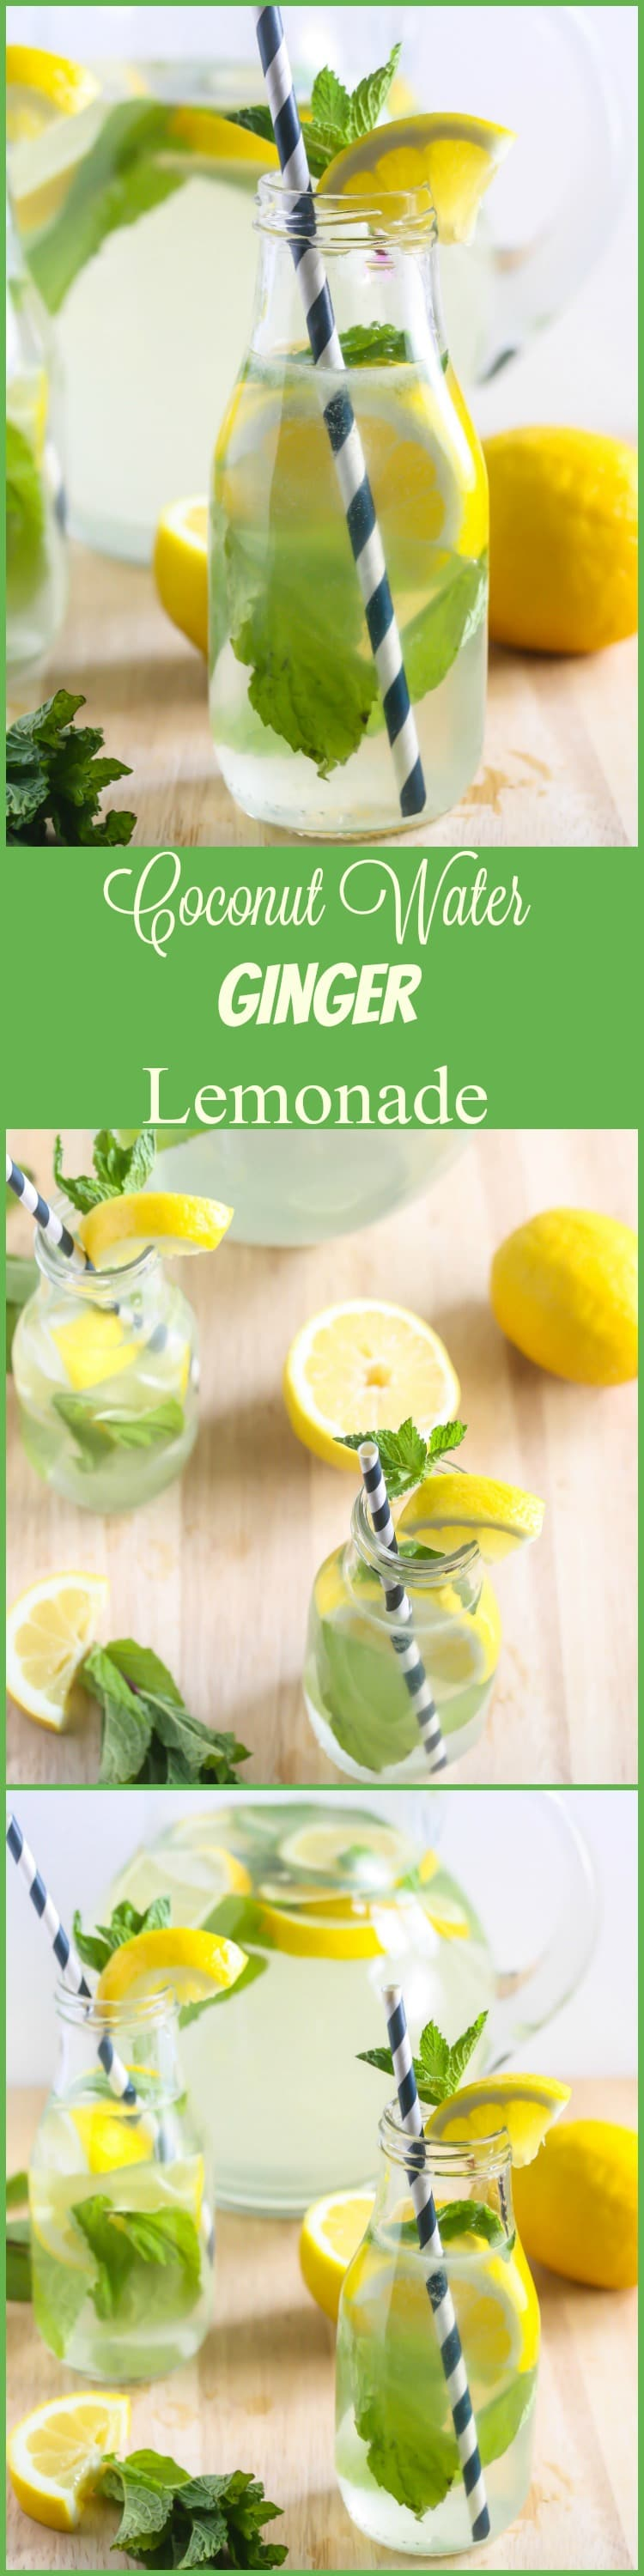 You can enjoy this refreshing Coconut Water Ginger Lemonade all year long! #vegan #healthy www.laurenkellynutrition.com